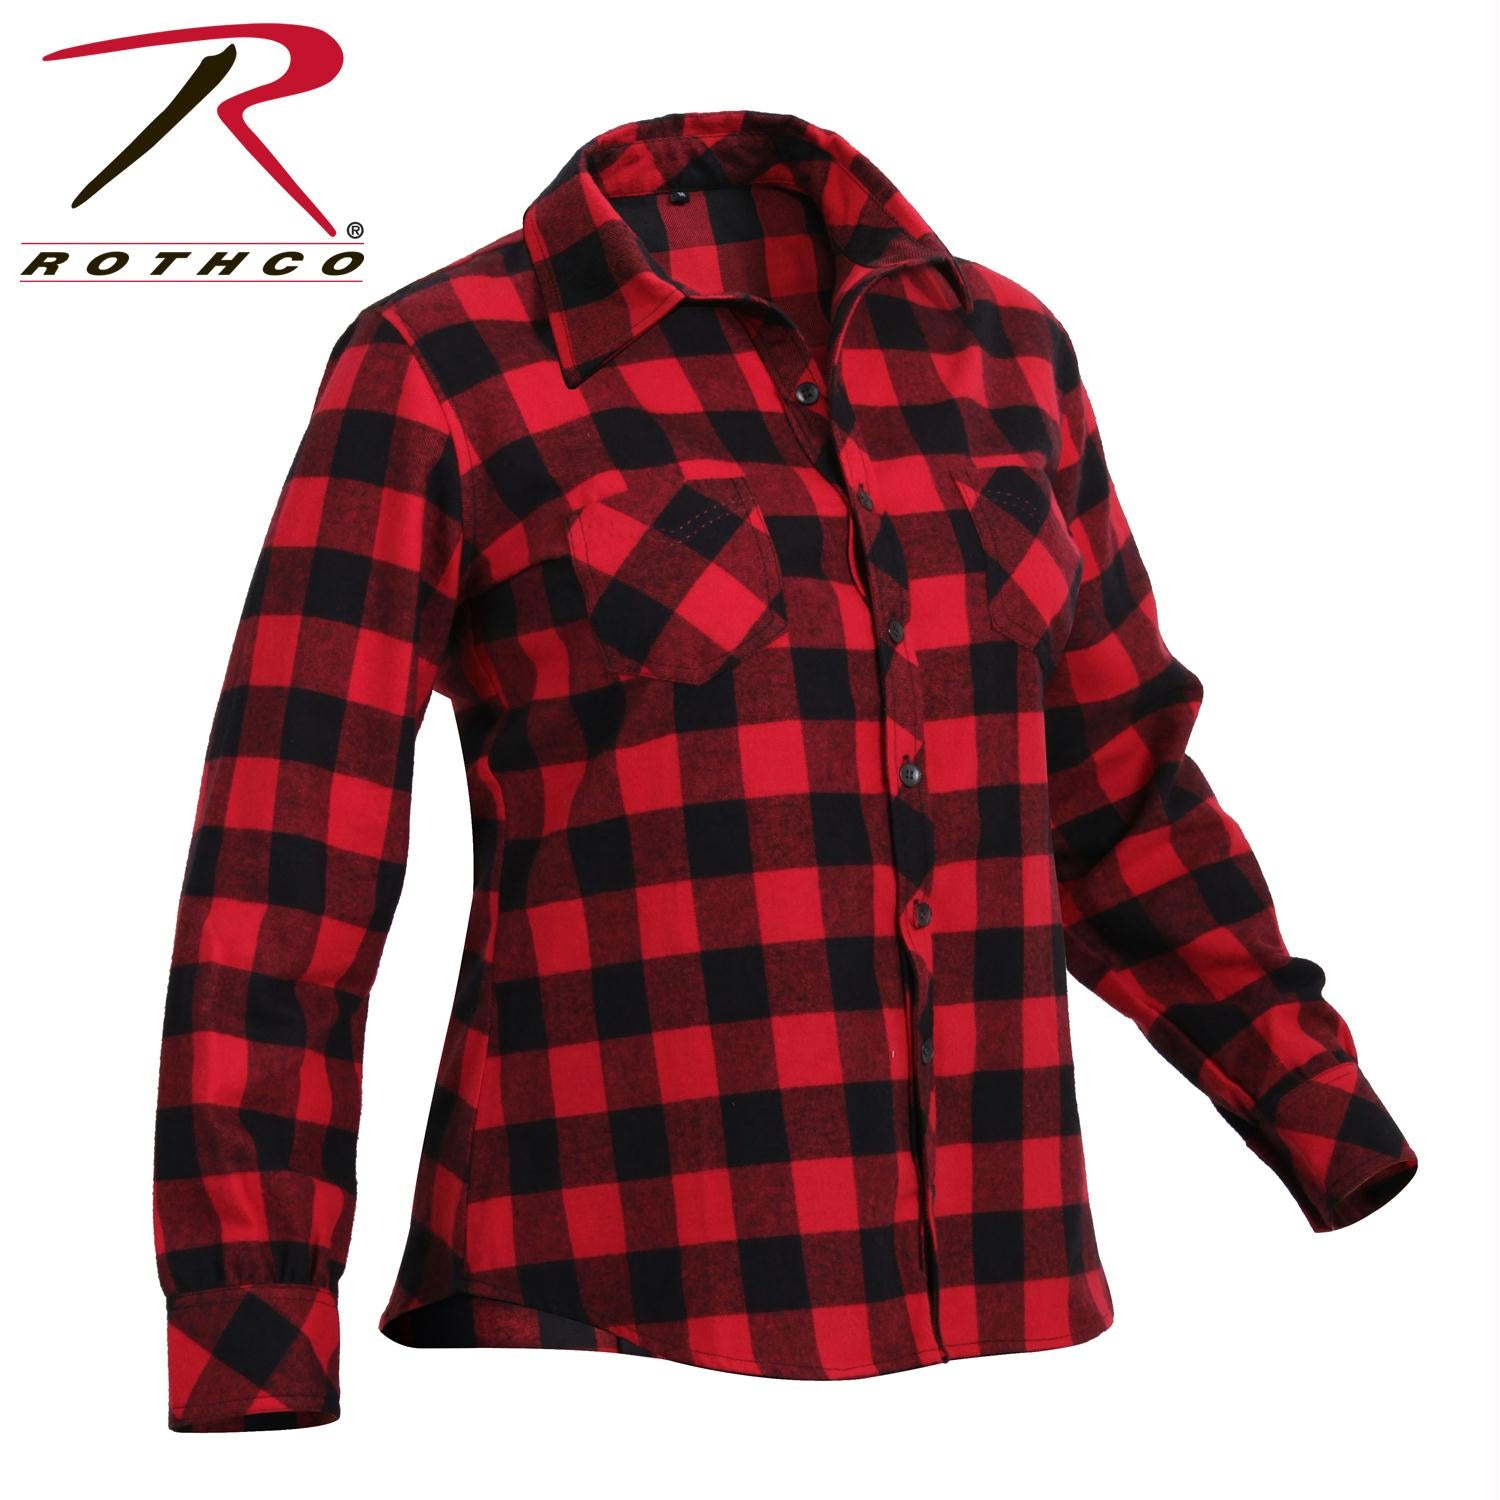 Rothco Womens Plaid Flannel Shirt - Red / Black / 2XL